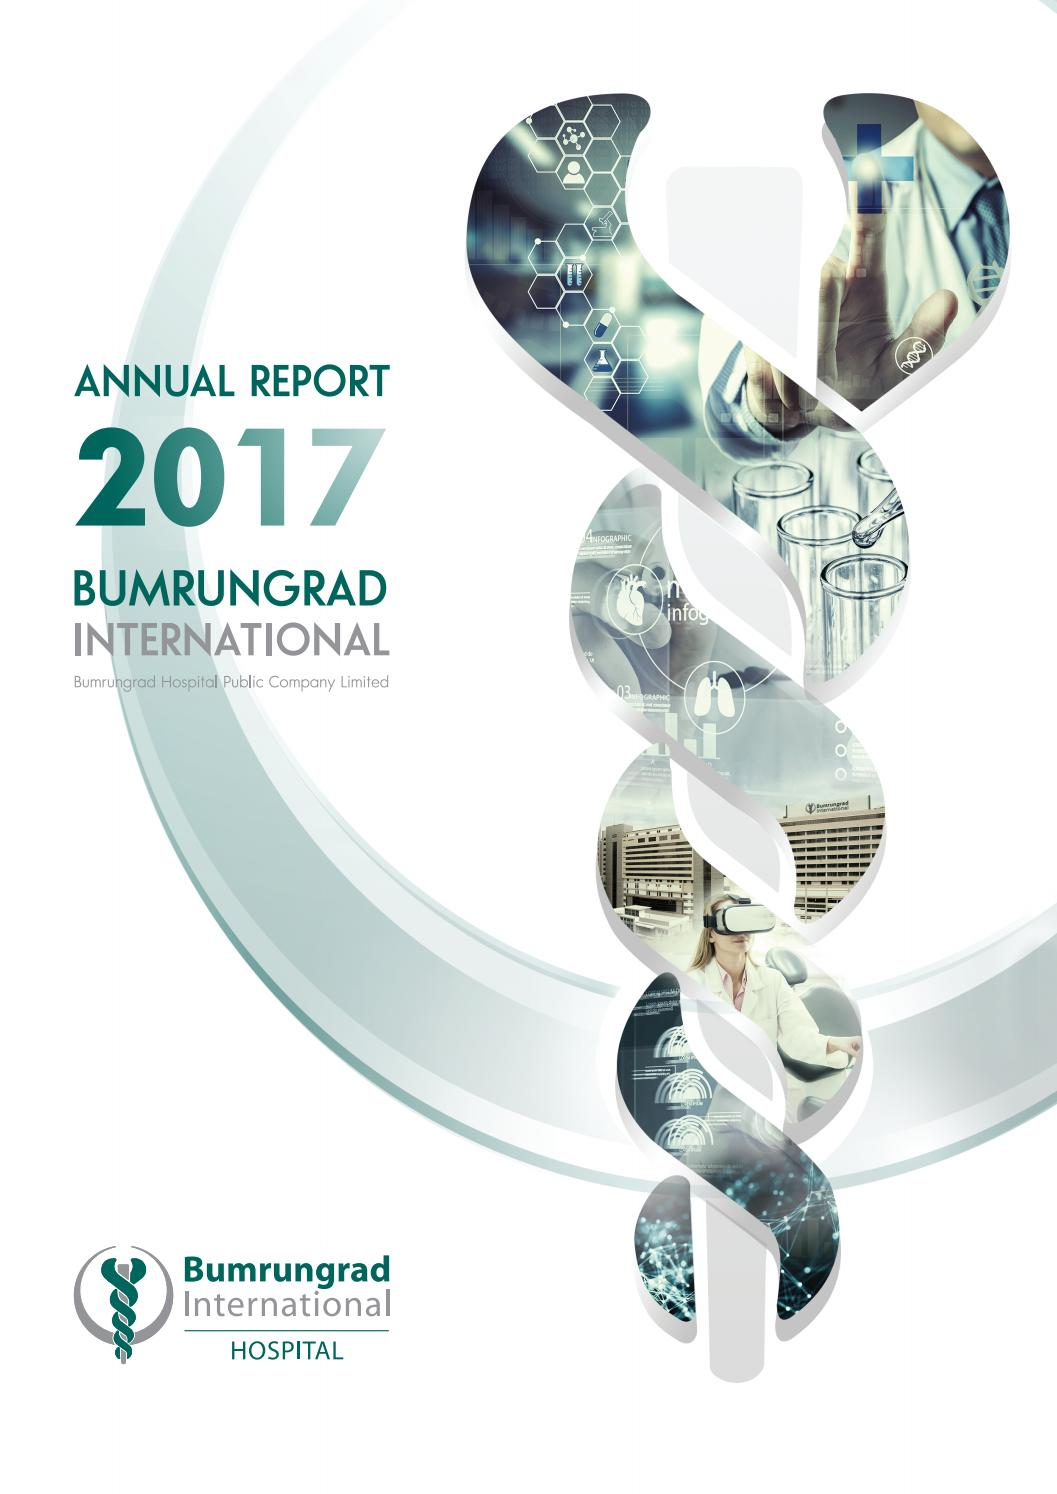 BH : Annual Report 2017 by Bumrungrad Hospital Public Company